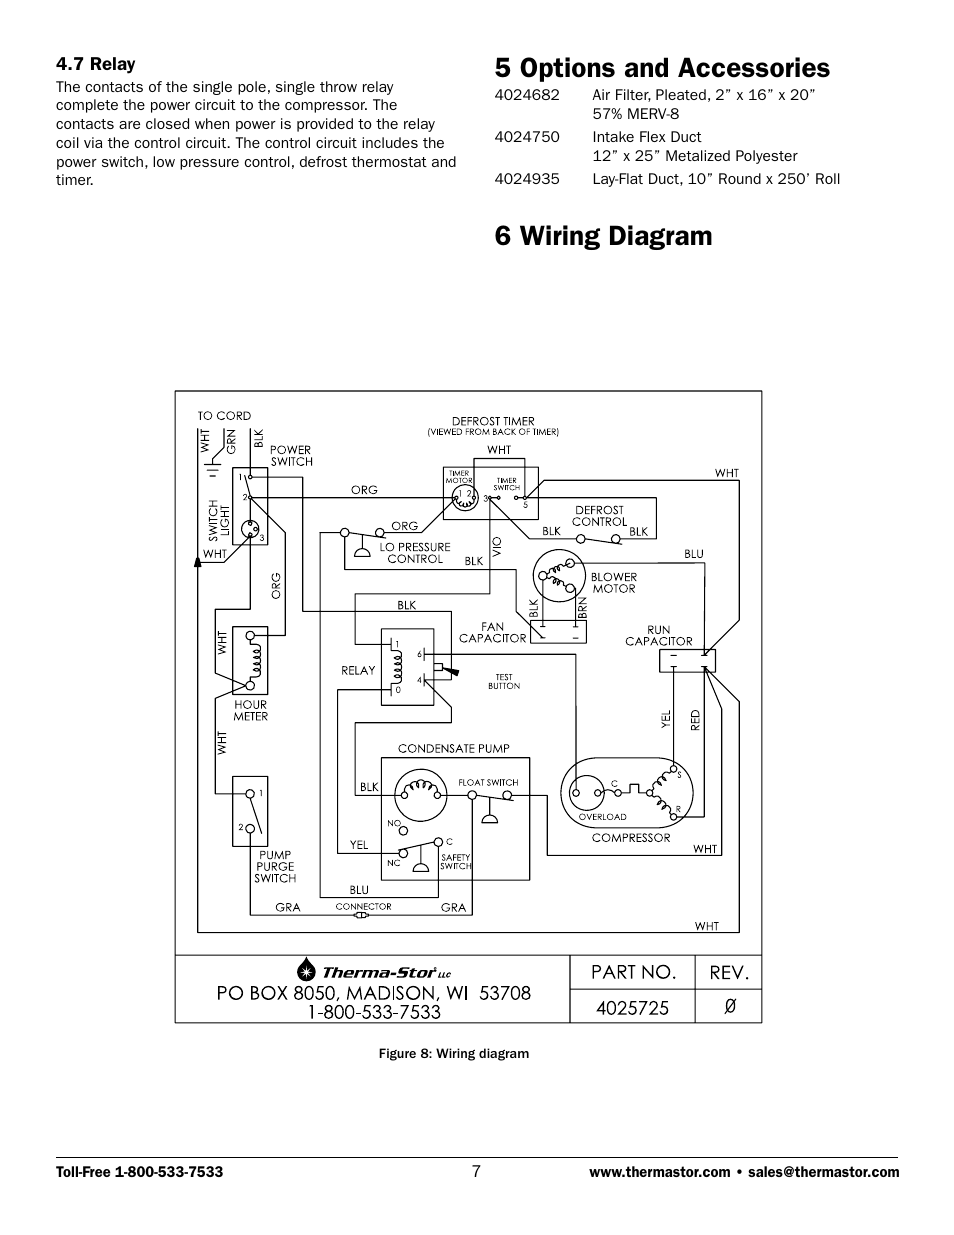 hight resolution of 5 options and accessories 6 wiring diagram therma stor products5 options and accessories 6